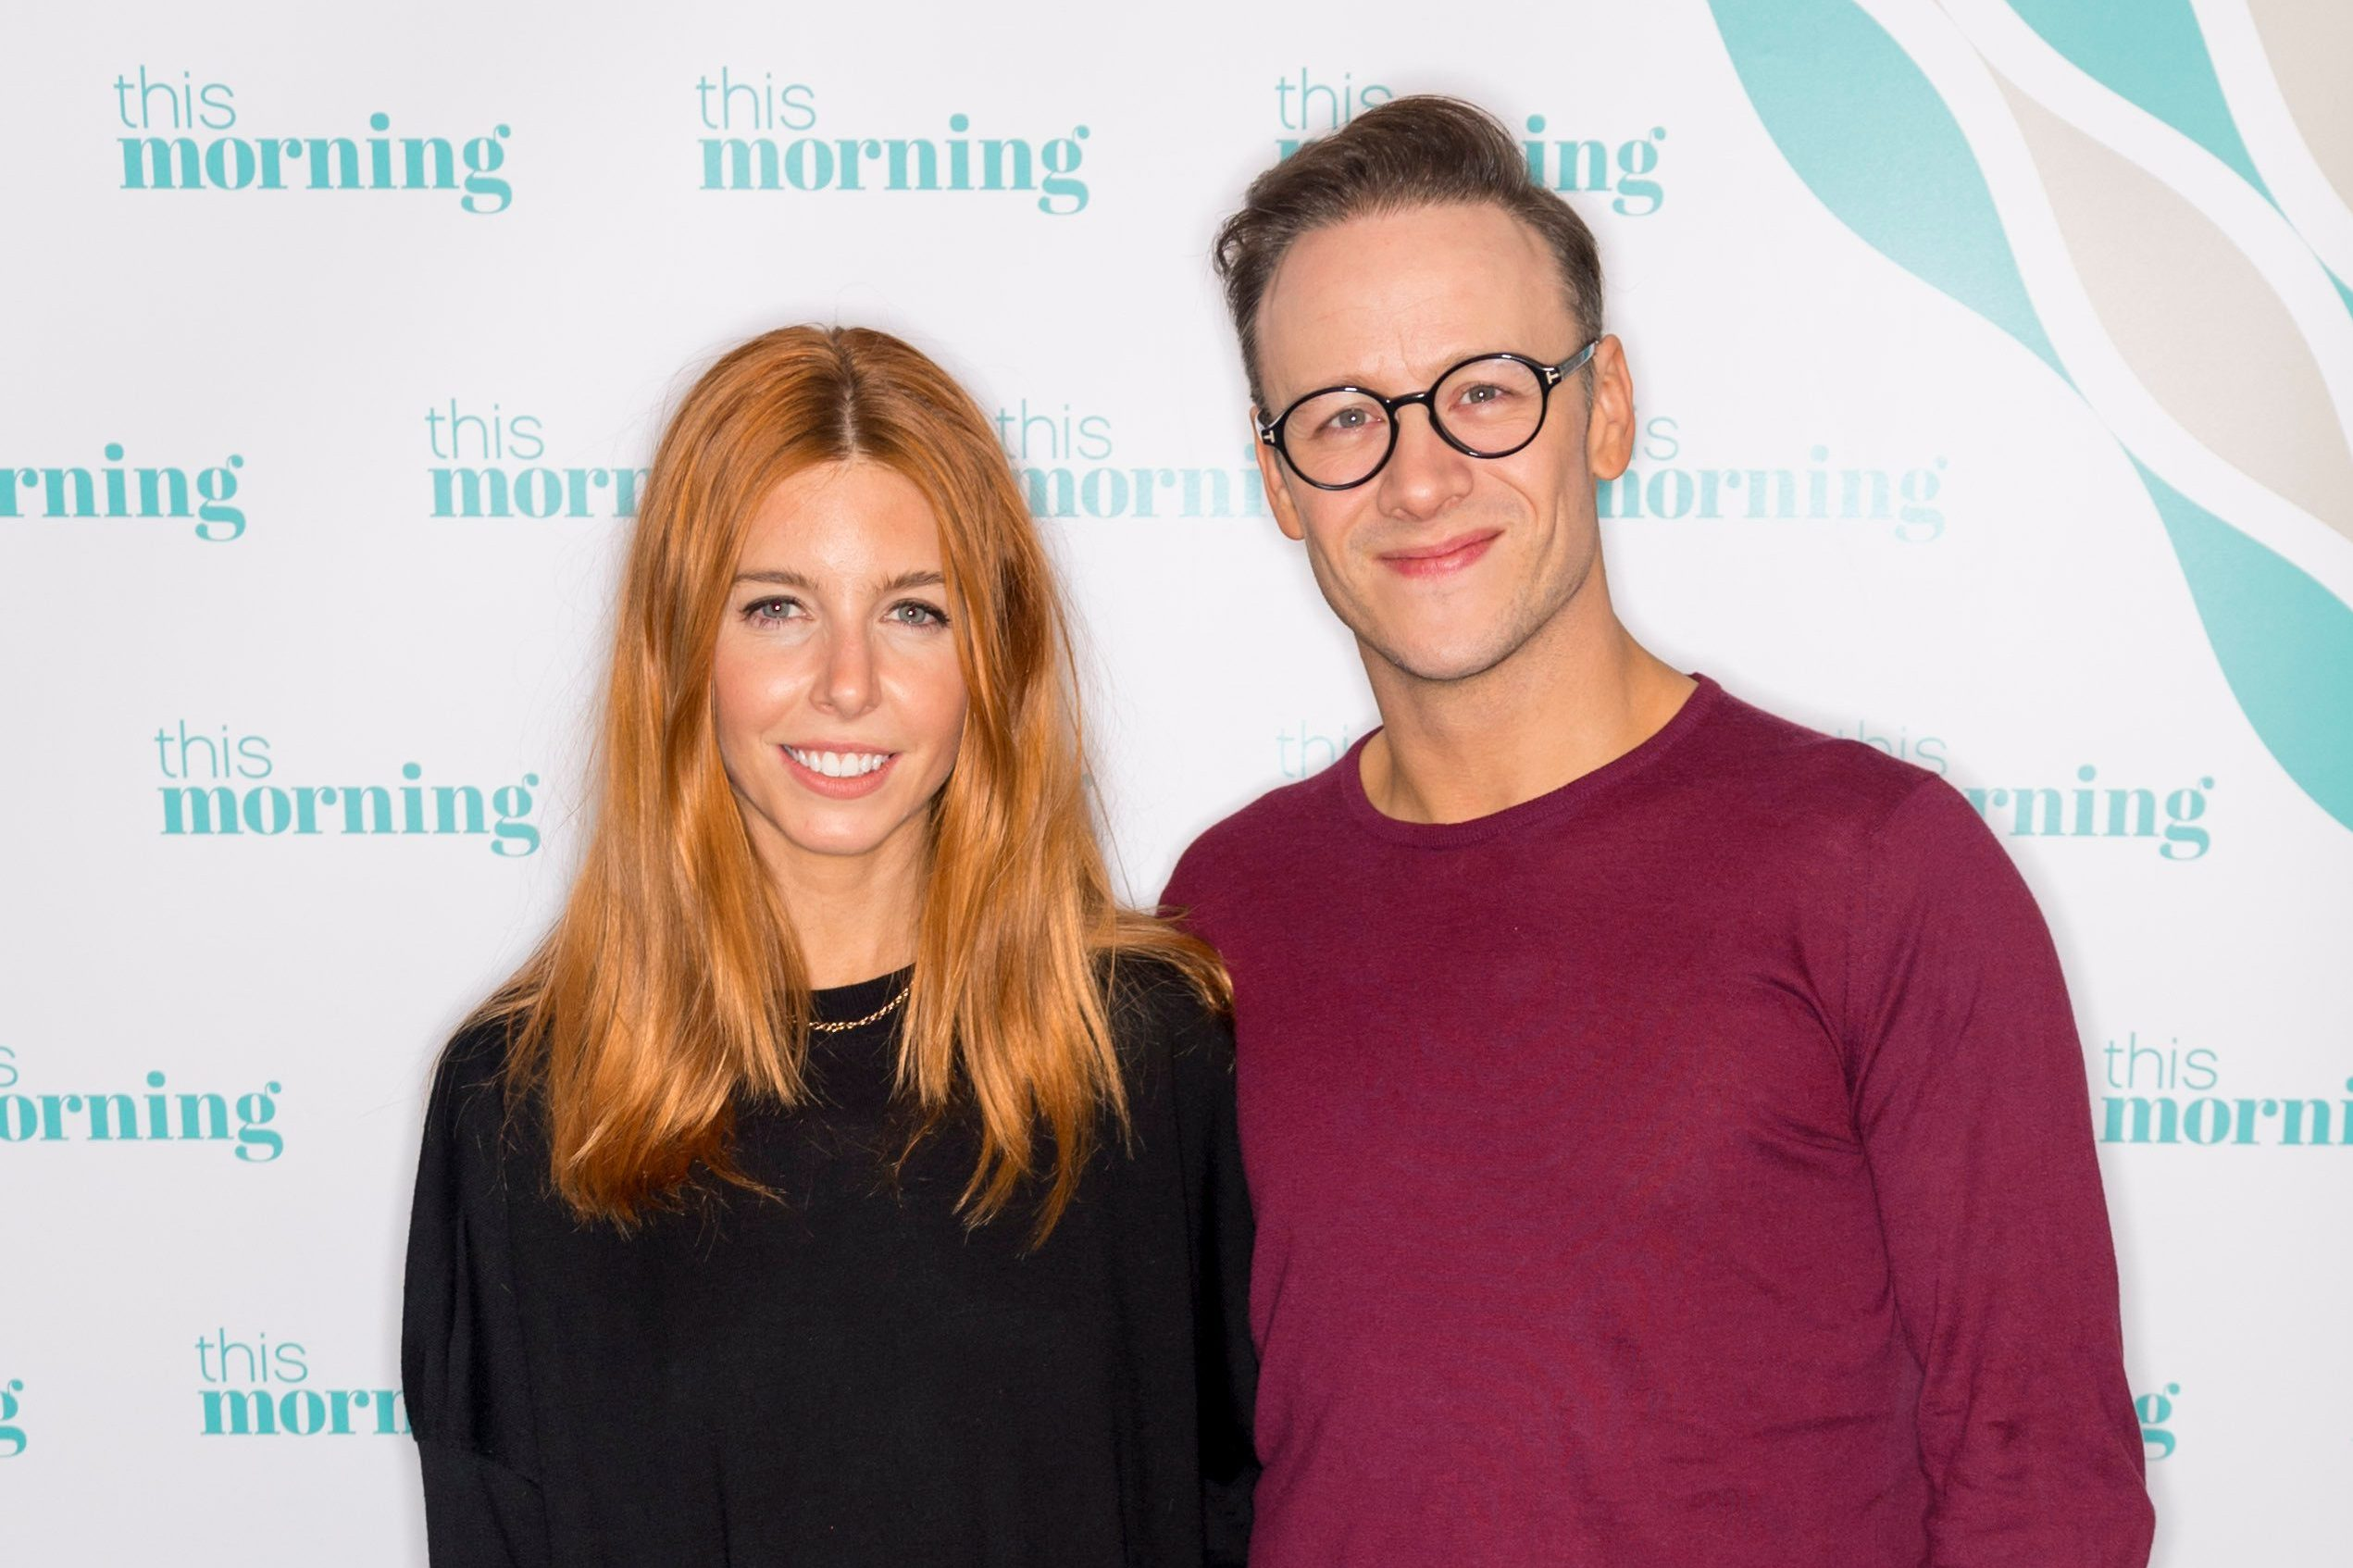 kevin-clifton-sent-90-tweets-in-support-of-stacey-dooley-over-'white-saviour'-row-five-weeks-before-she-split-with-her-boyfriend